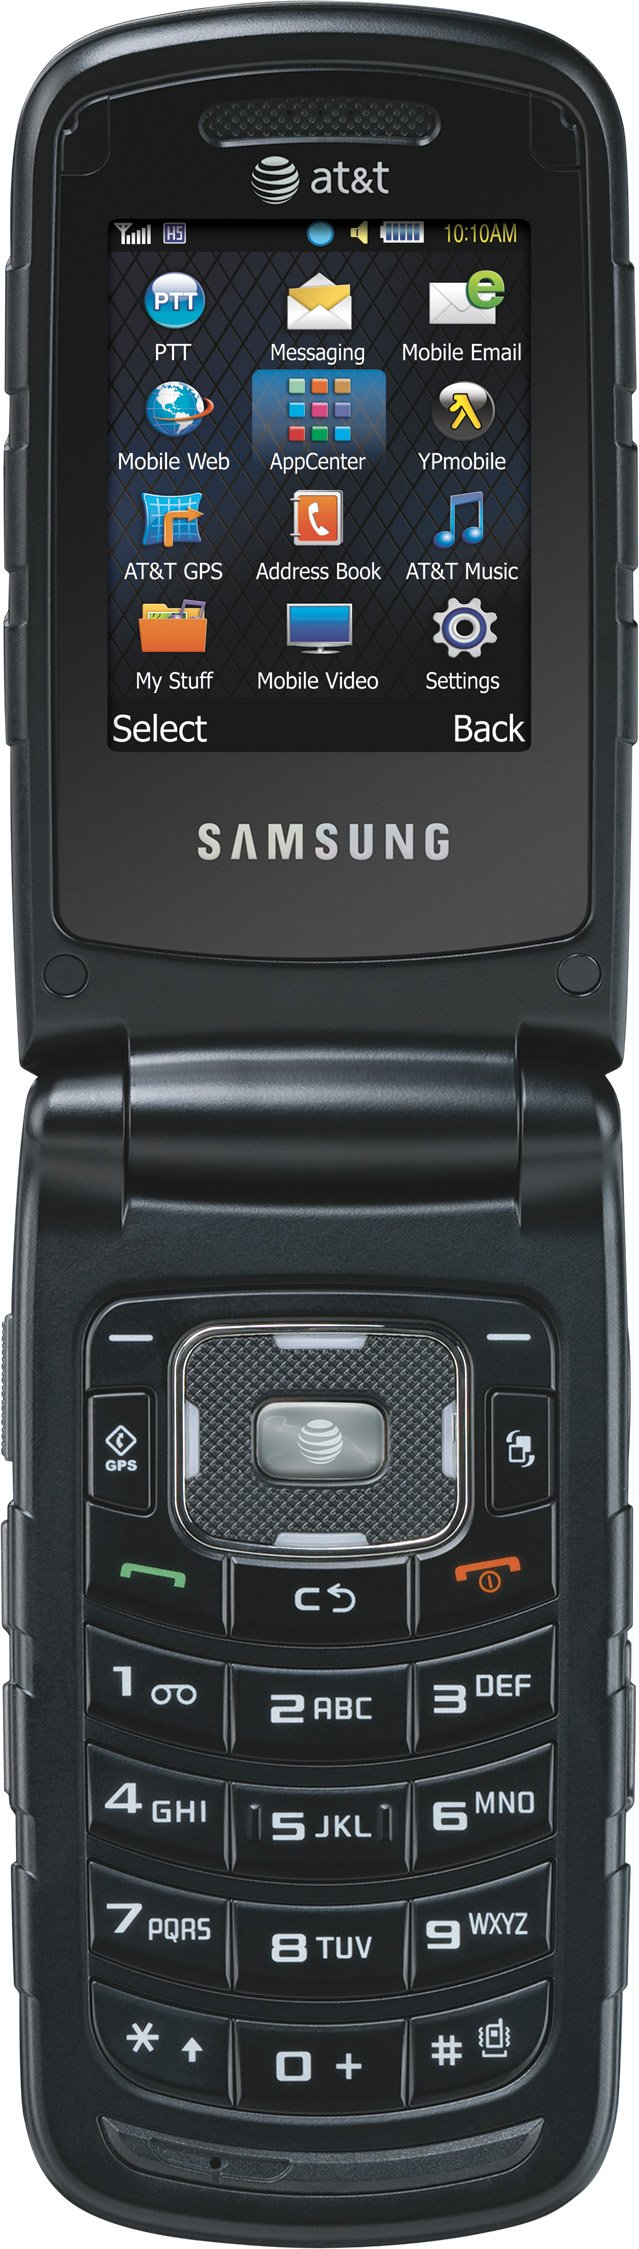 Samsung Rugby II, Black (AT&T) by Samsung (Image #3)